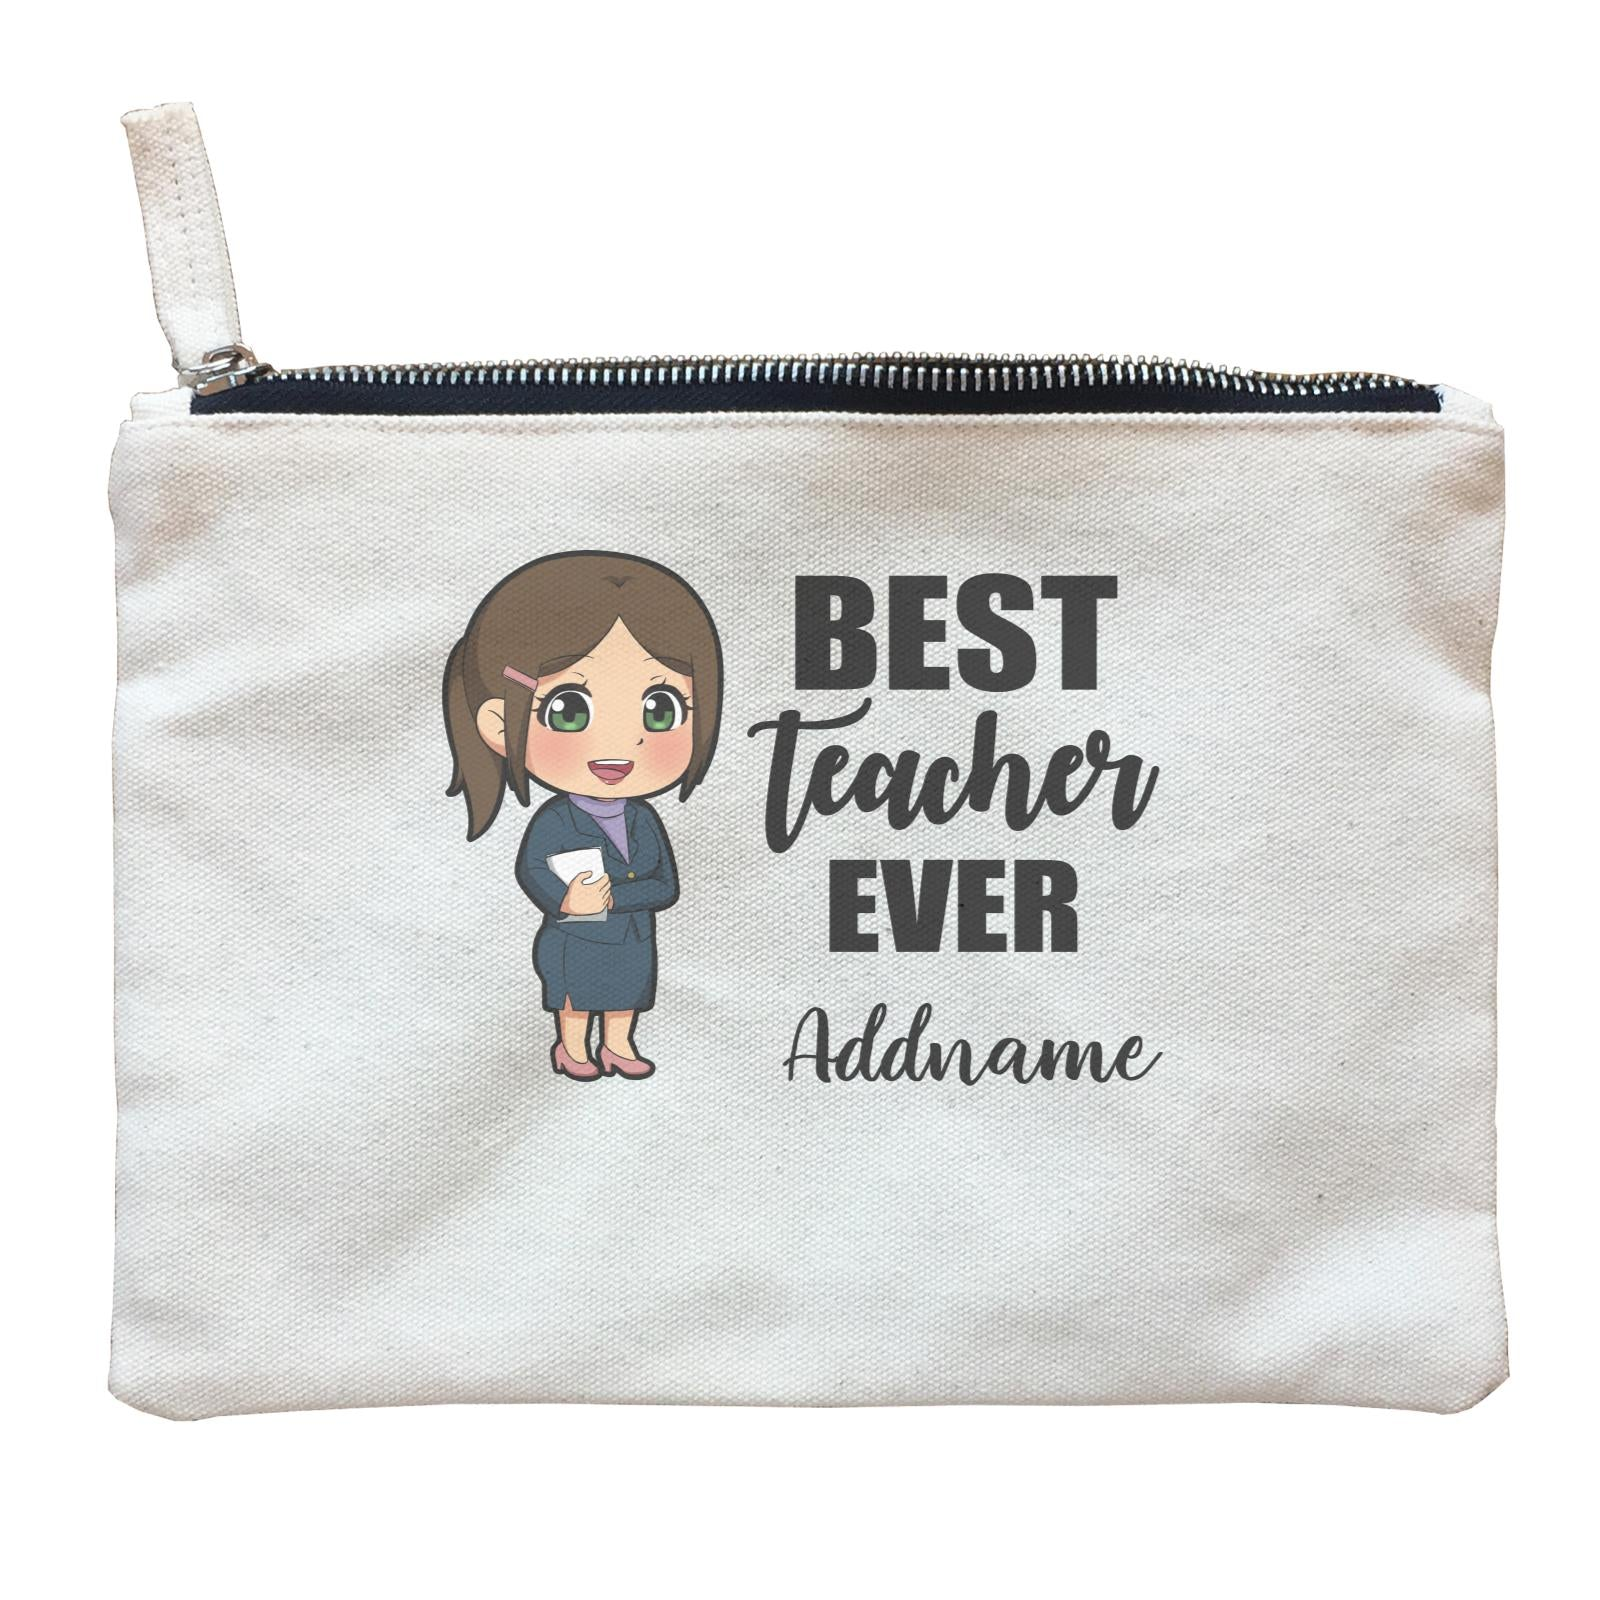 Chibi Teachers Chinese Woman Best Teacher Ever Addname Zipper Pouch